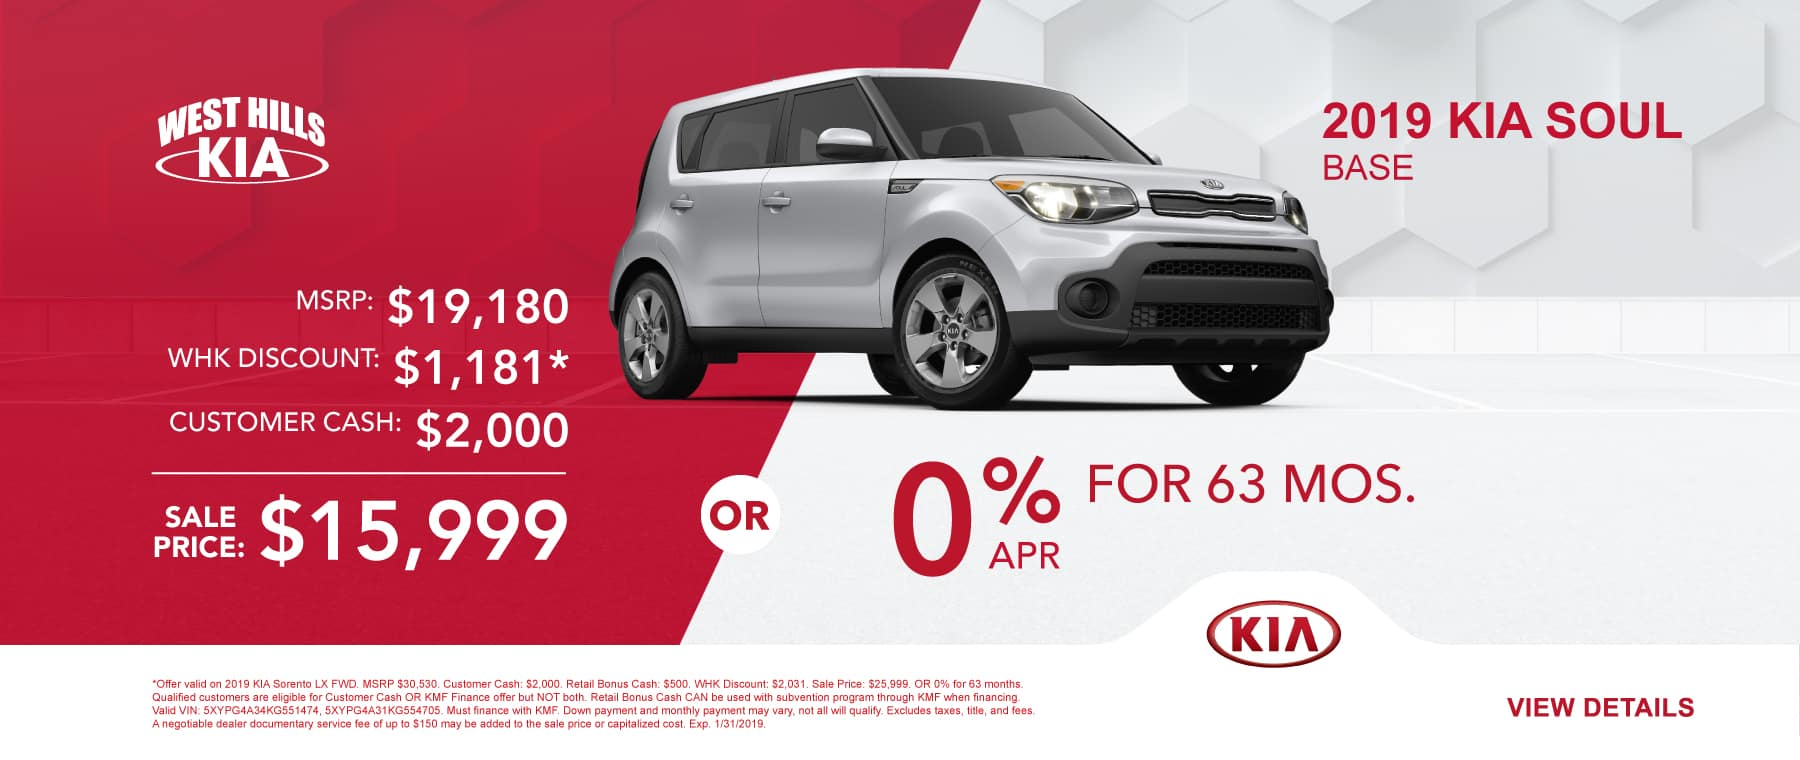 2019 KIA Soul Base  MSRP: $19,180 Customer Cash: $2,000 WHK Discount: $1,181 * Sale Price: $15,999 OR 0% for 63 months   *Offer valid on 2019 KIA Soul Base. MSRP $19,180. Customer Cash: $2,000. WHK Discount: $1,181. Sale Price: $15,999. OR 0% for 63 months. Qualified customers are eligible for Customer Cash OR KMF Finance offer but NOT both. Retail Bonus Cash CAN be used with subvention program through KMF when financing. Valid VIN: KNDJN2A26K7691627, KNDJN2A29K7691590. Must finance with KMF. Down payment and monthly payment may vary, not all will qualify. Excludes taxes, title, and fees. A negotiable dealer documentary service fee of up to $150 may be added to the sale price or capitalized cost. Exp. 1/31/2019.